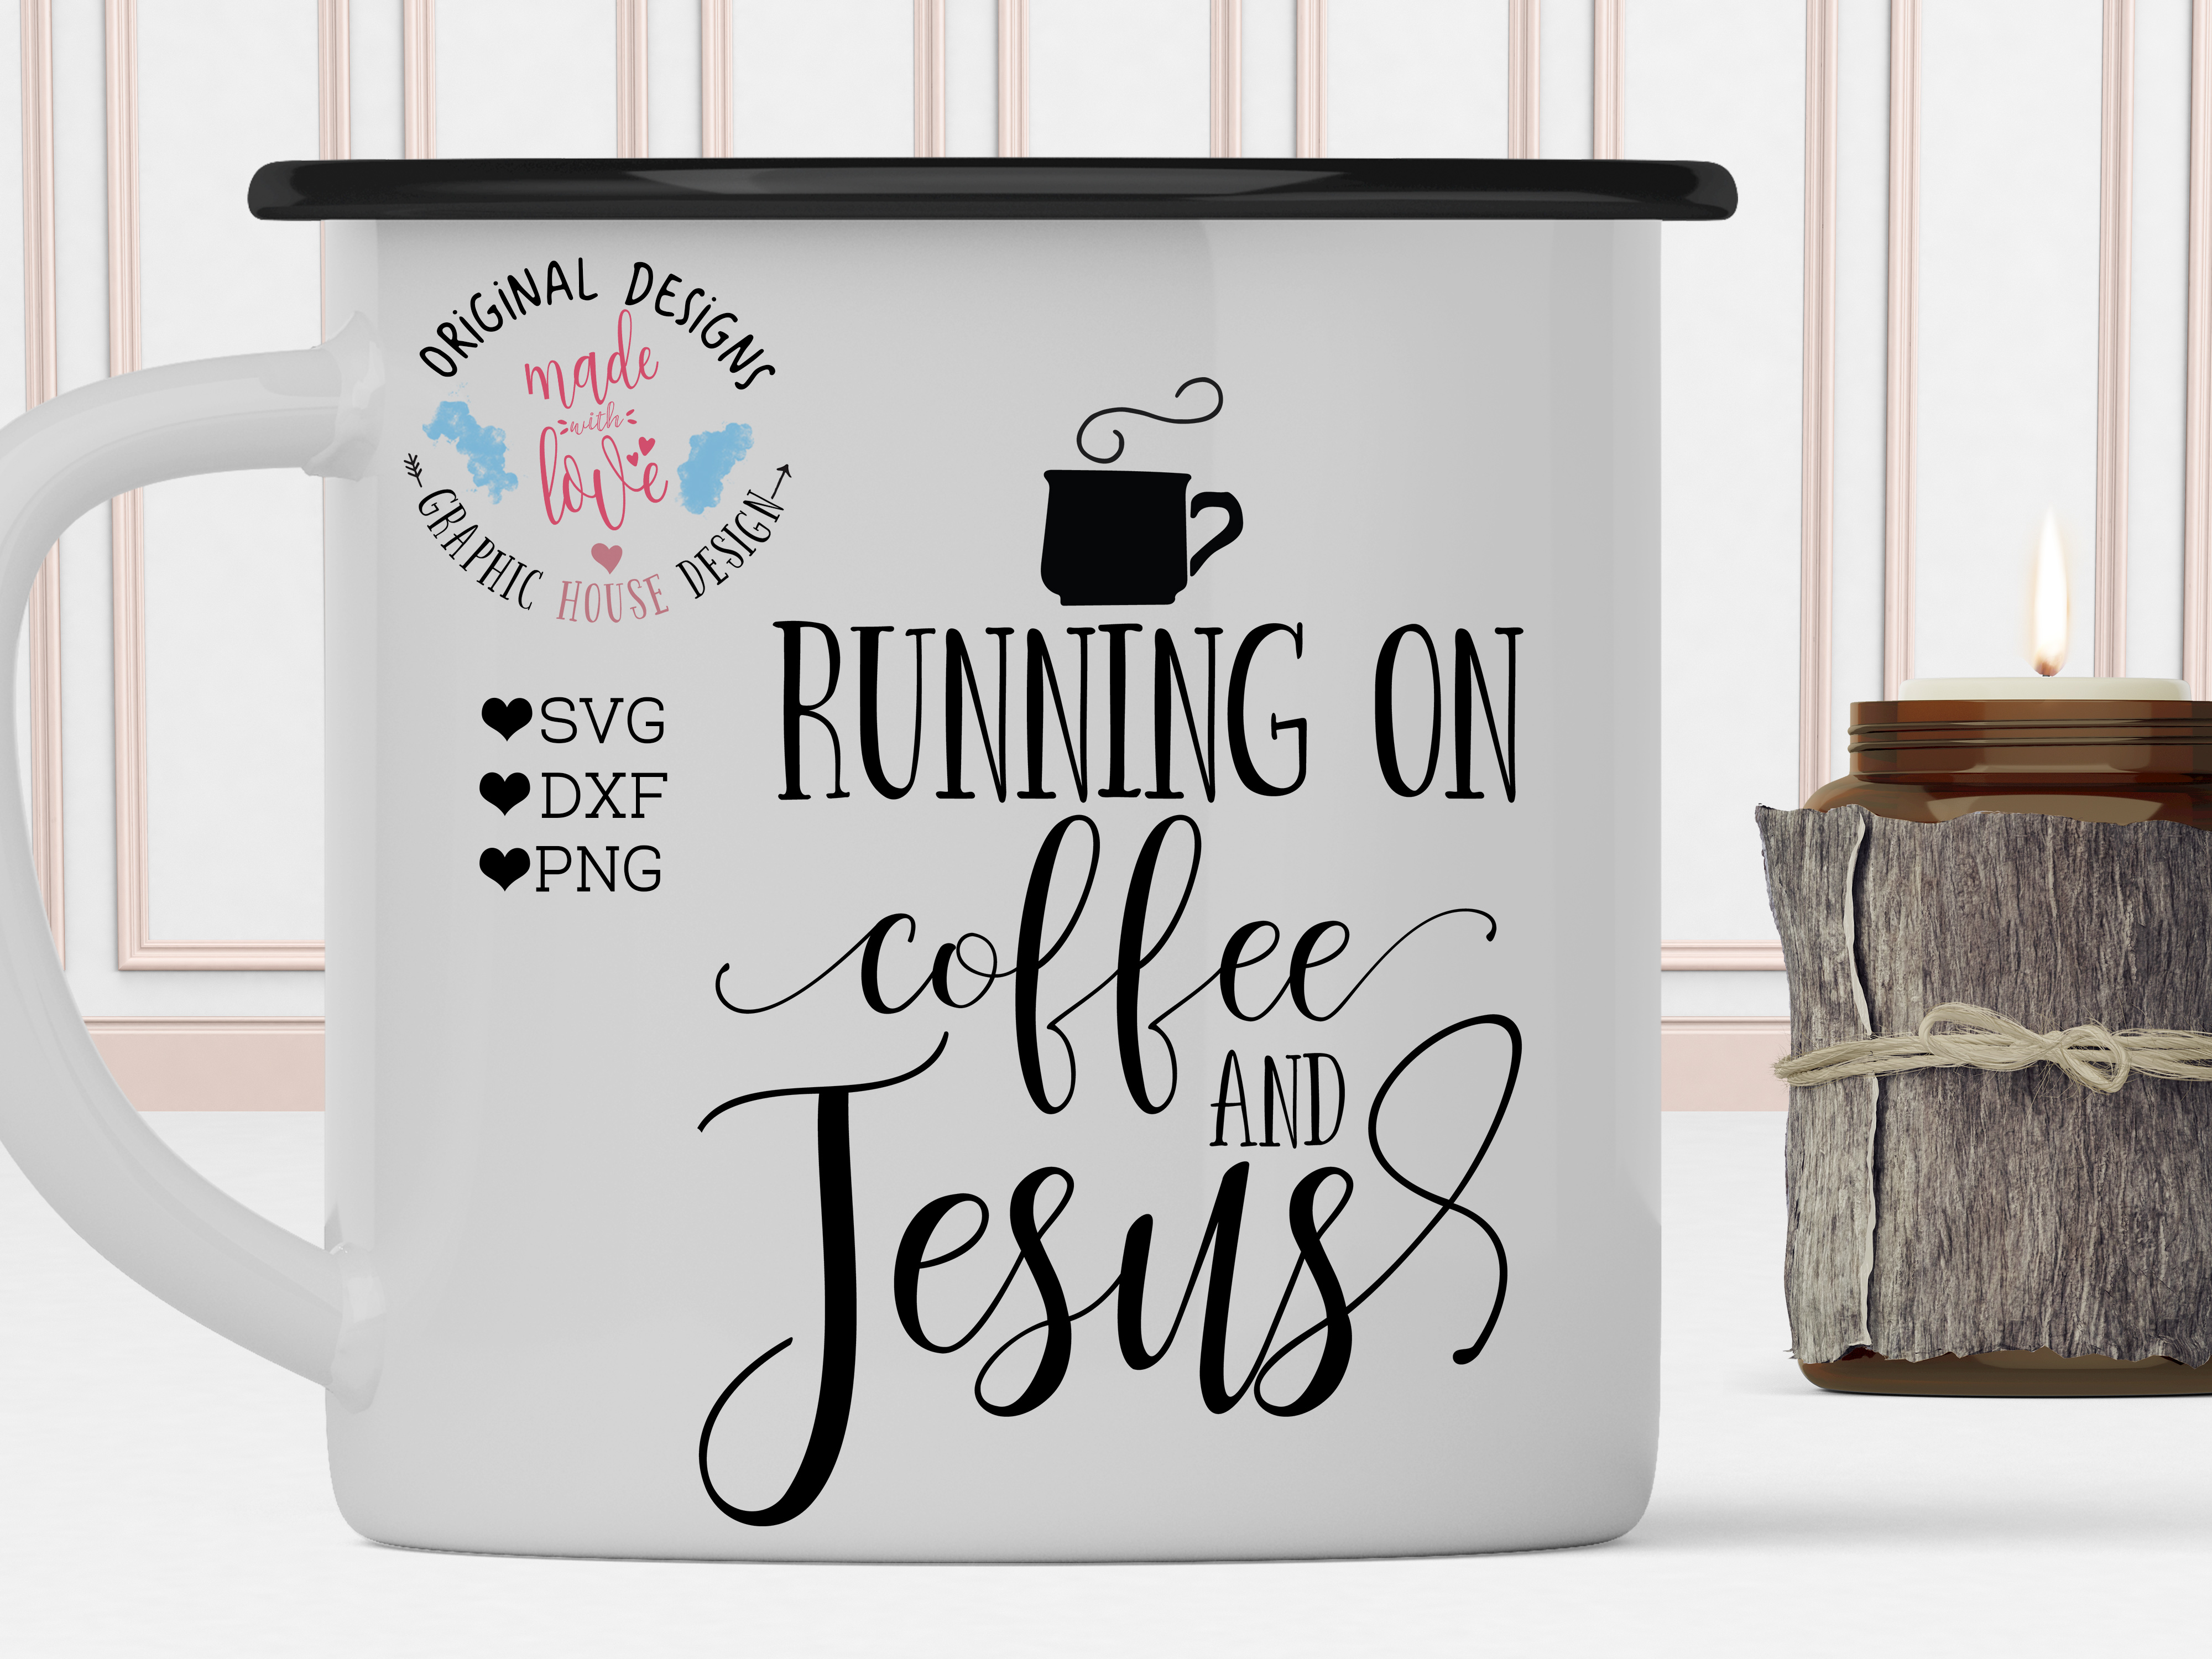 Running on Coffee and Jesus Cutting File (SVG, DXF, PNG) example image 2